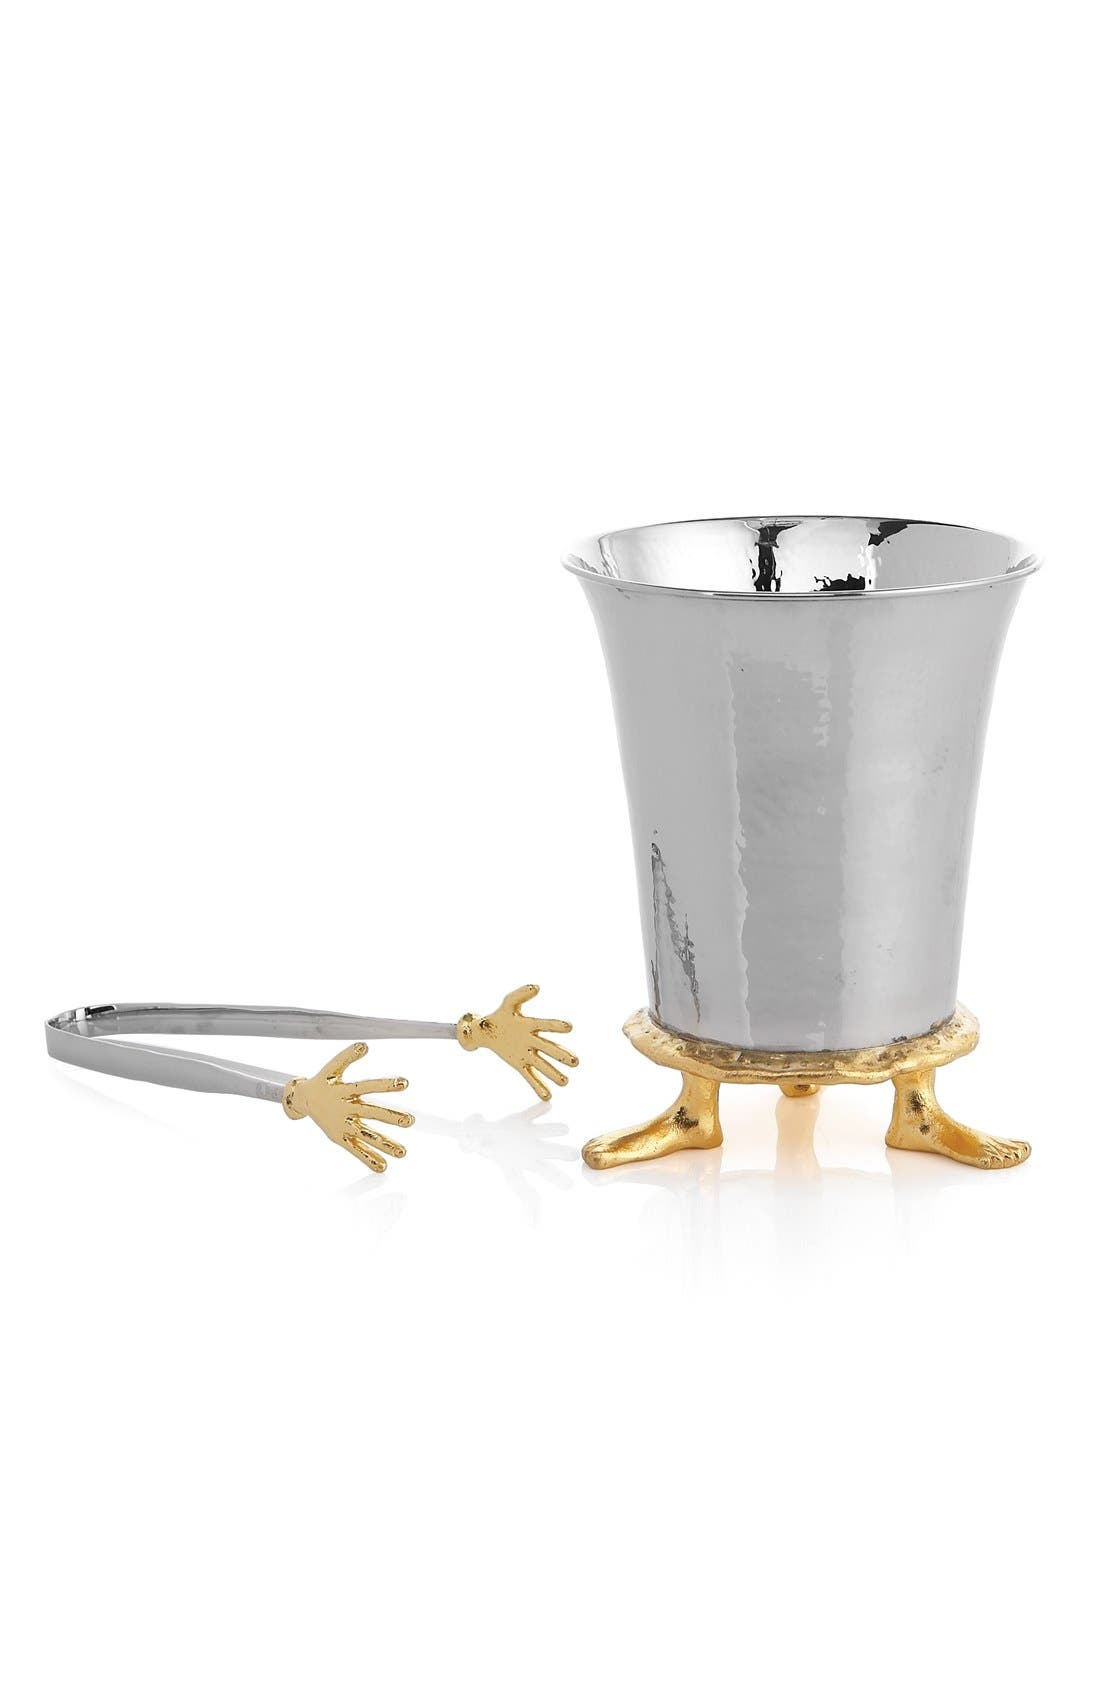 MICHAEL ARAM 'Hands & Feet' Ice Bucket